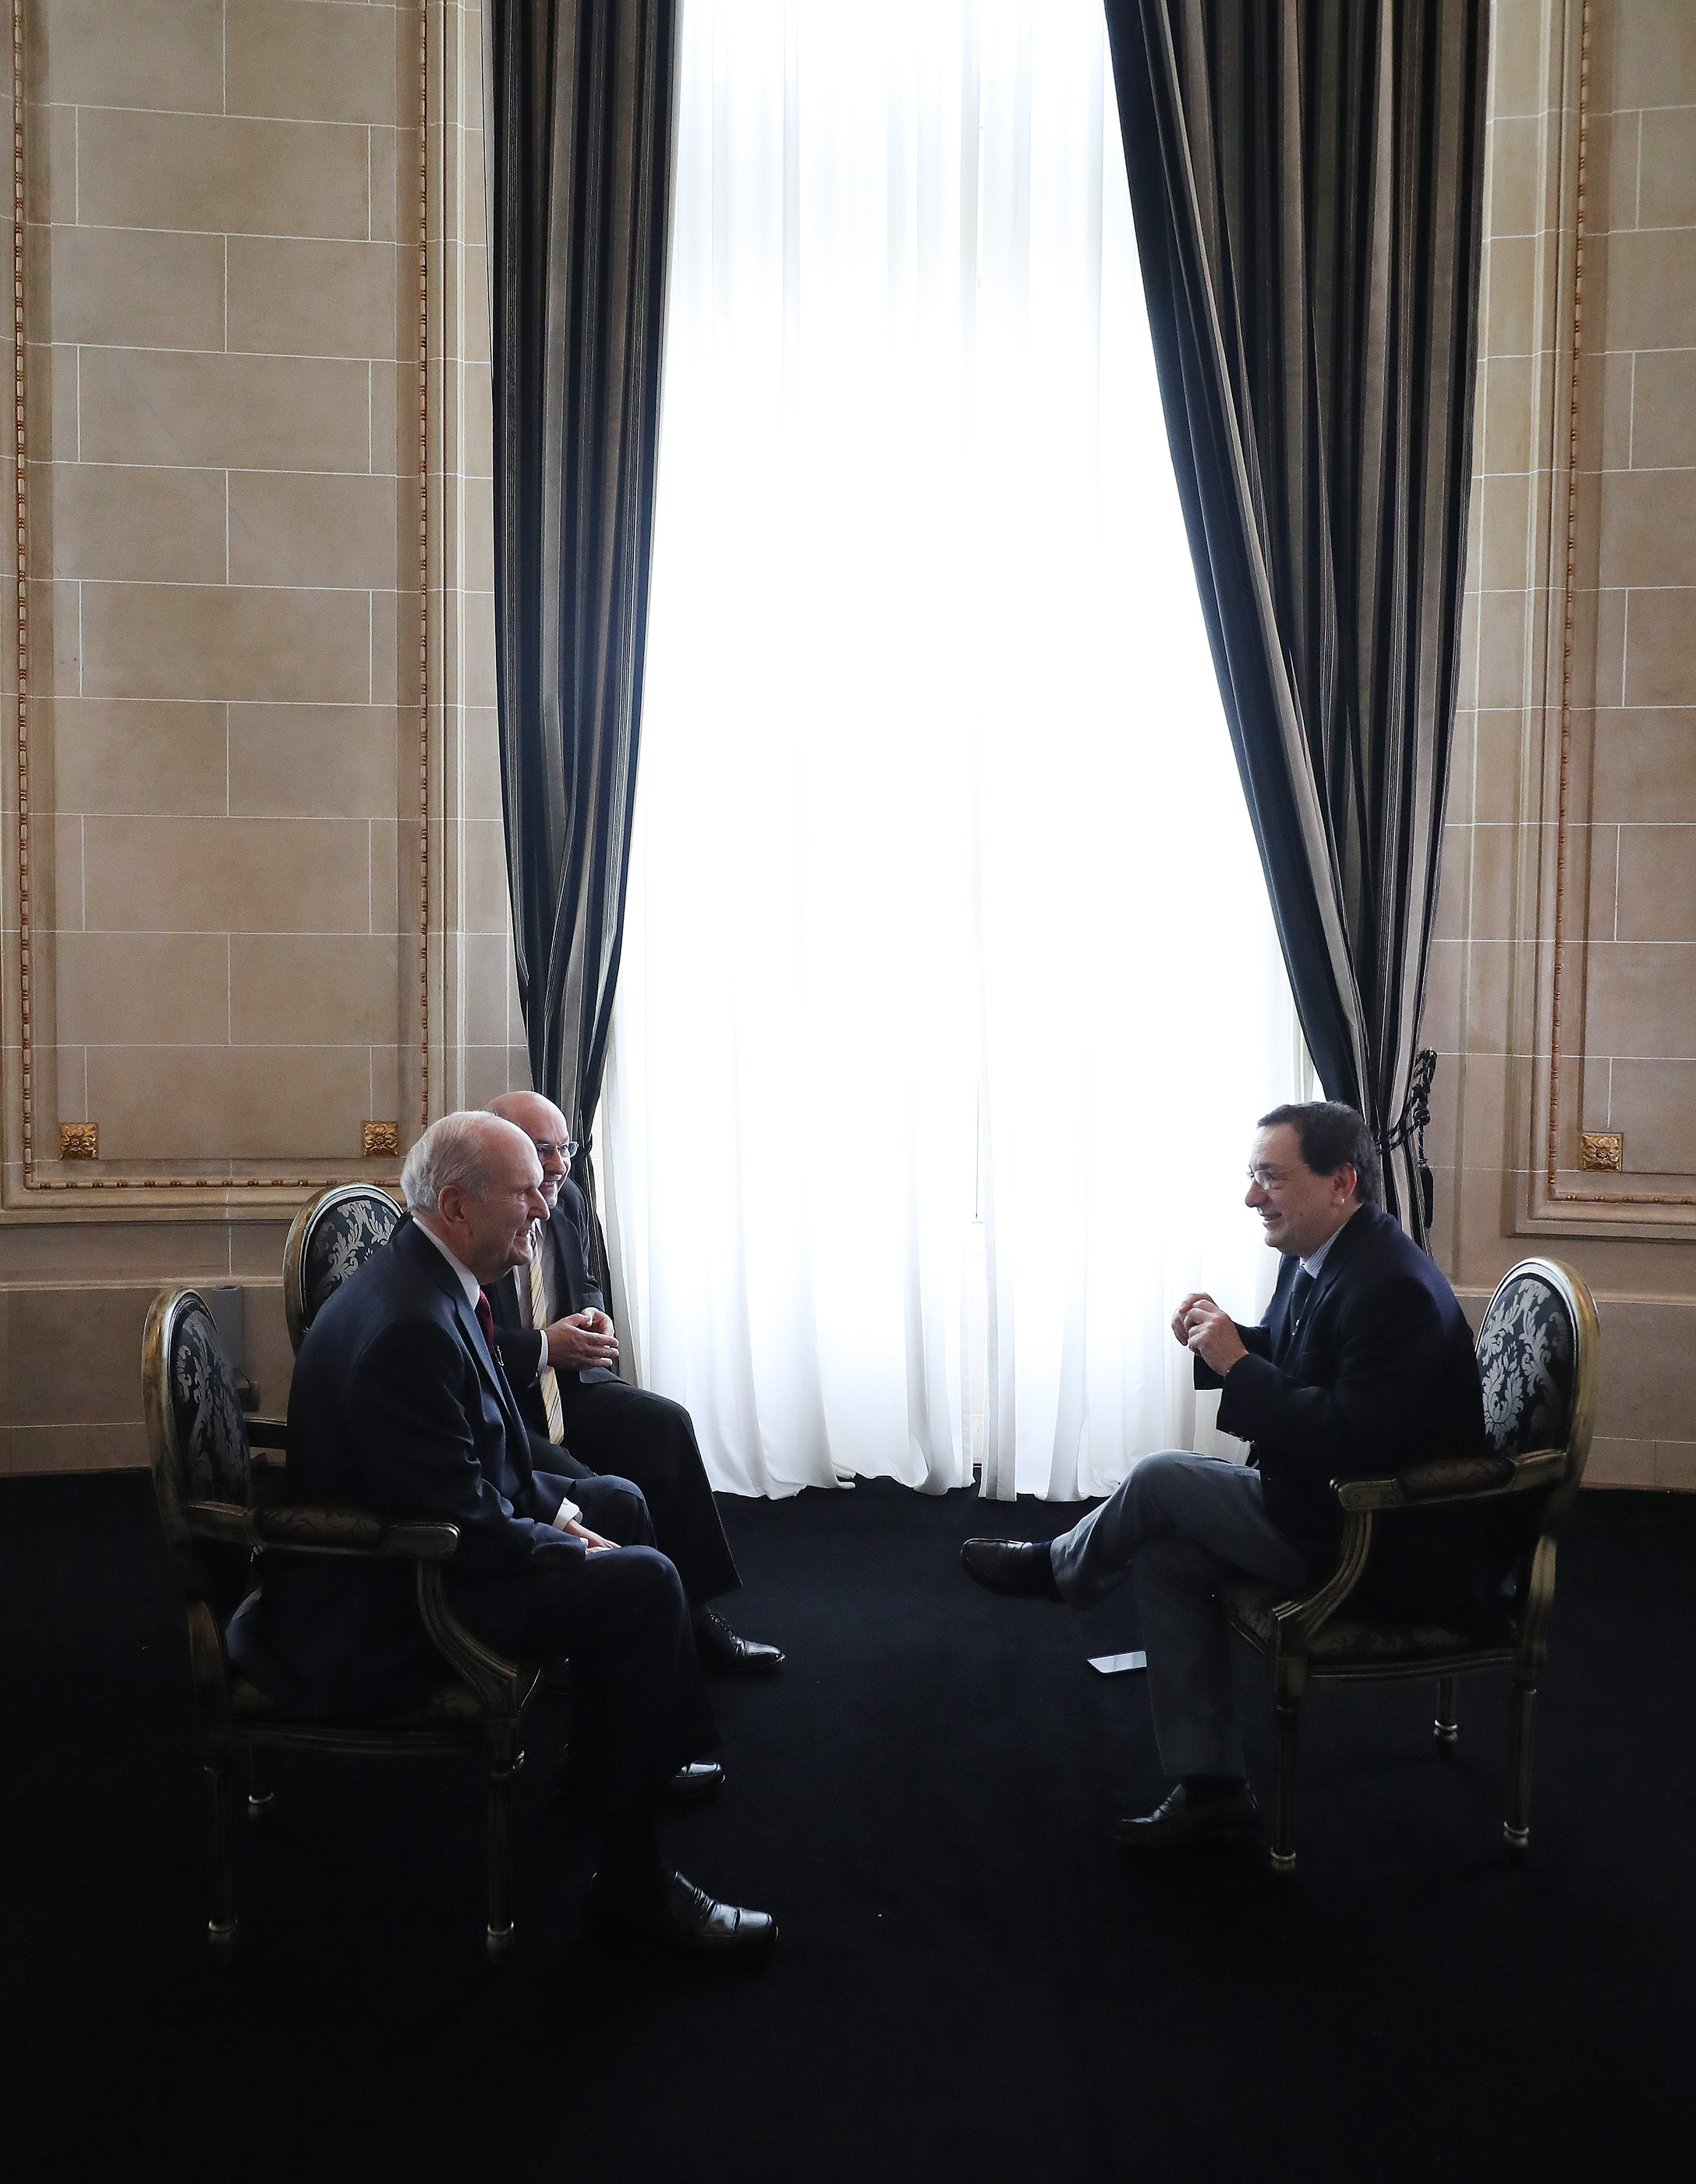 President Russell M. Nelson of The Church of Jesus Christ of Latter-day Saints, left, is interviewed by Sergio Rubin, Argentine journalist and biographer of Pope Francis, in Montevideo, Uruguay on Oct. 26, 2018. Carlos Aguero, right, interprets.